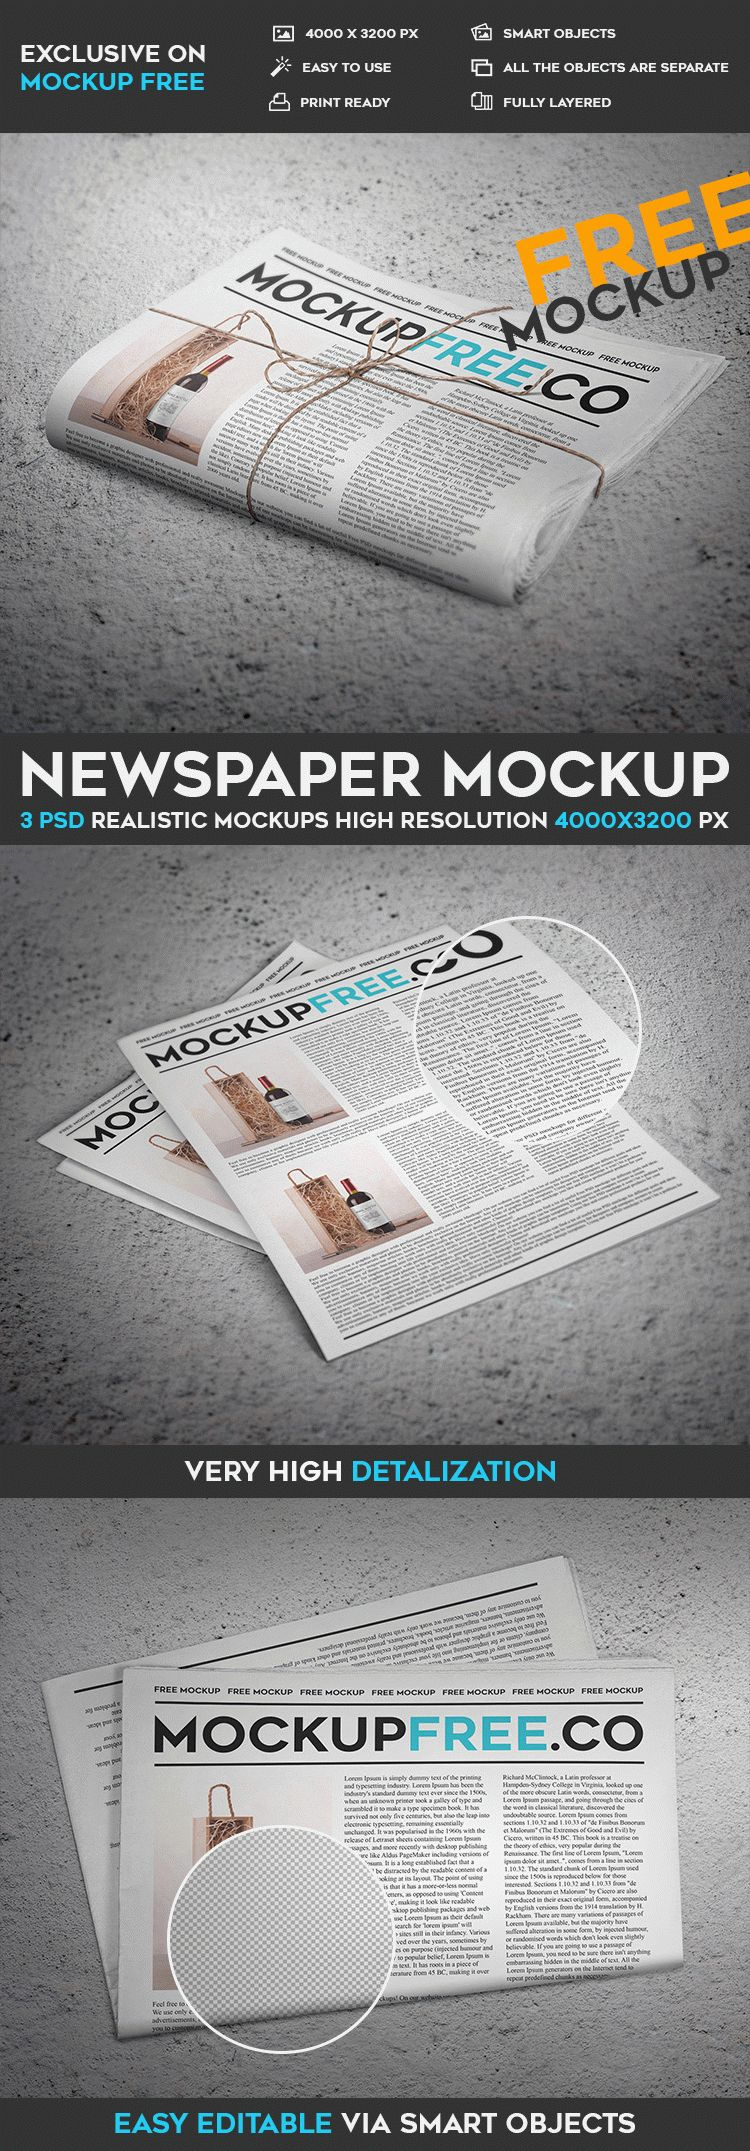 bigpreview_newspaper-mockup-template-free-in-psd